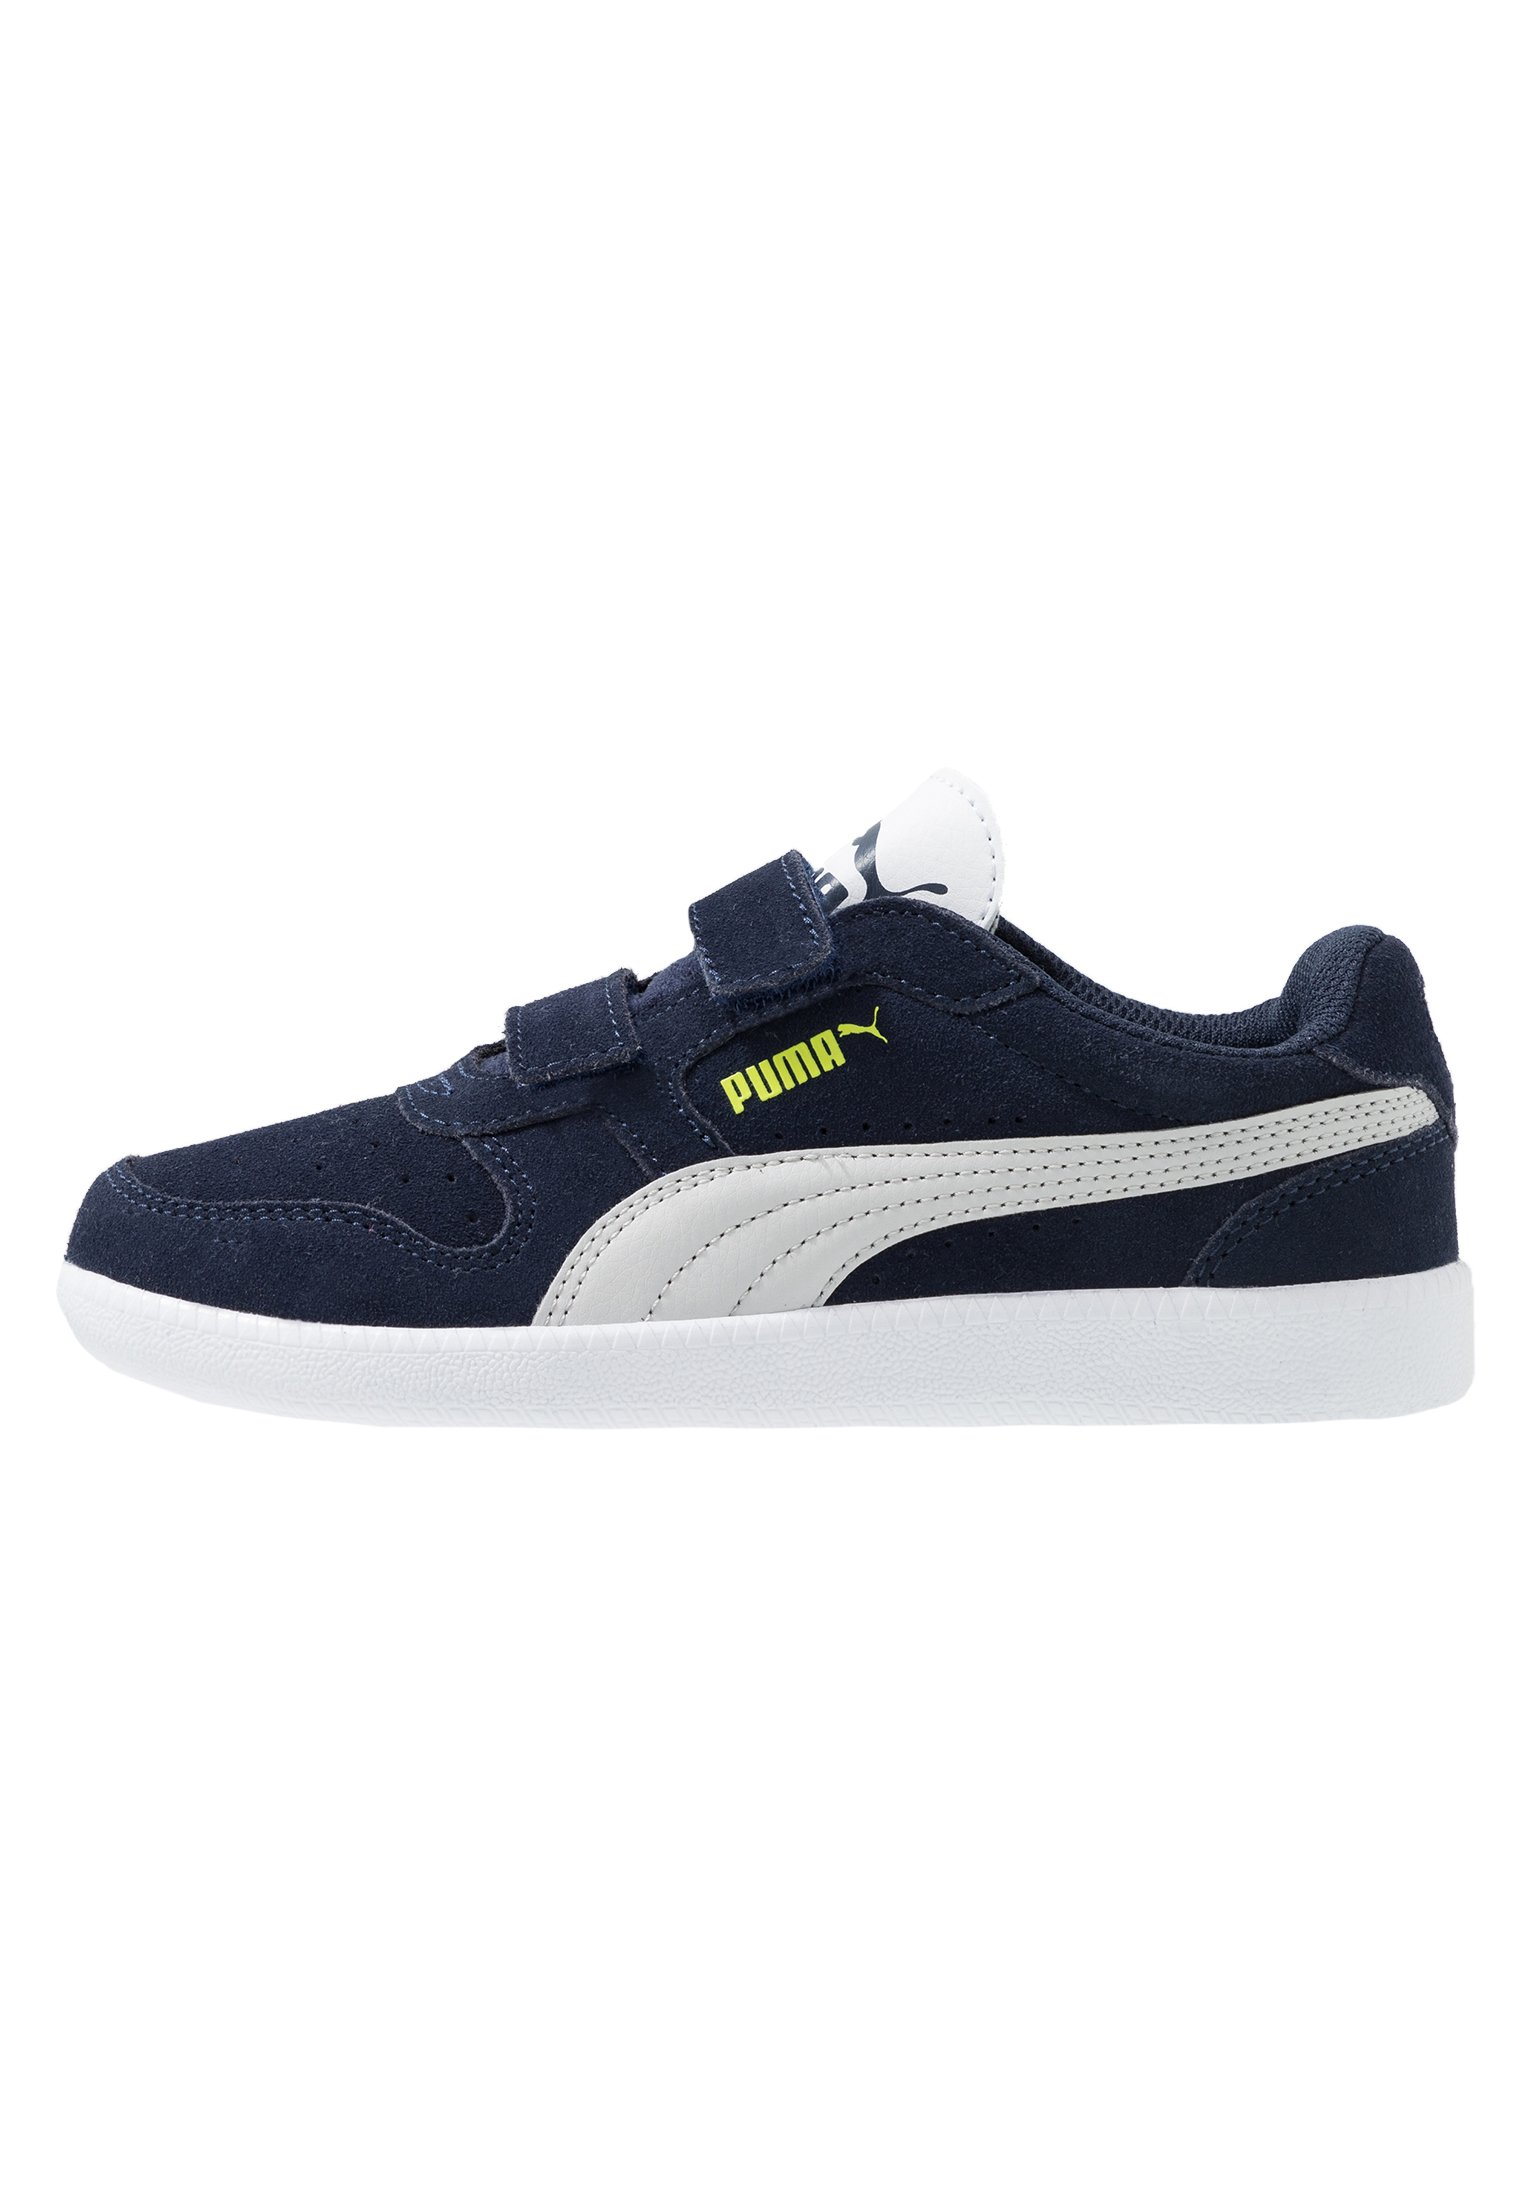 ICRA TRAINER - Baskets basses - peacoat/gray violet/nrgy yellow/white